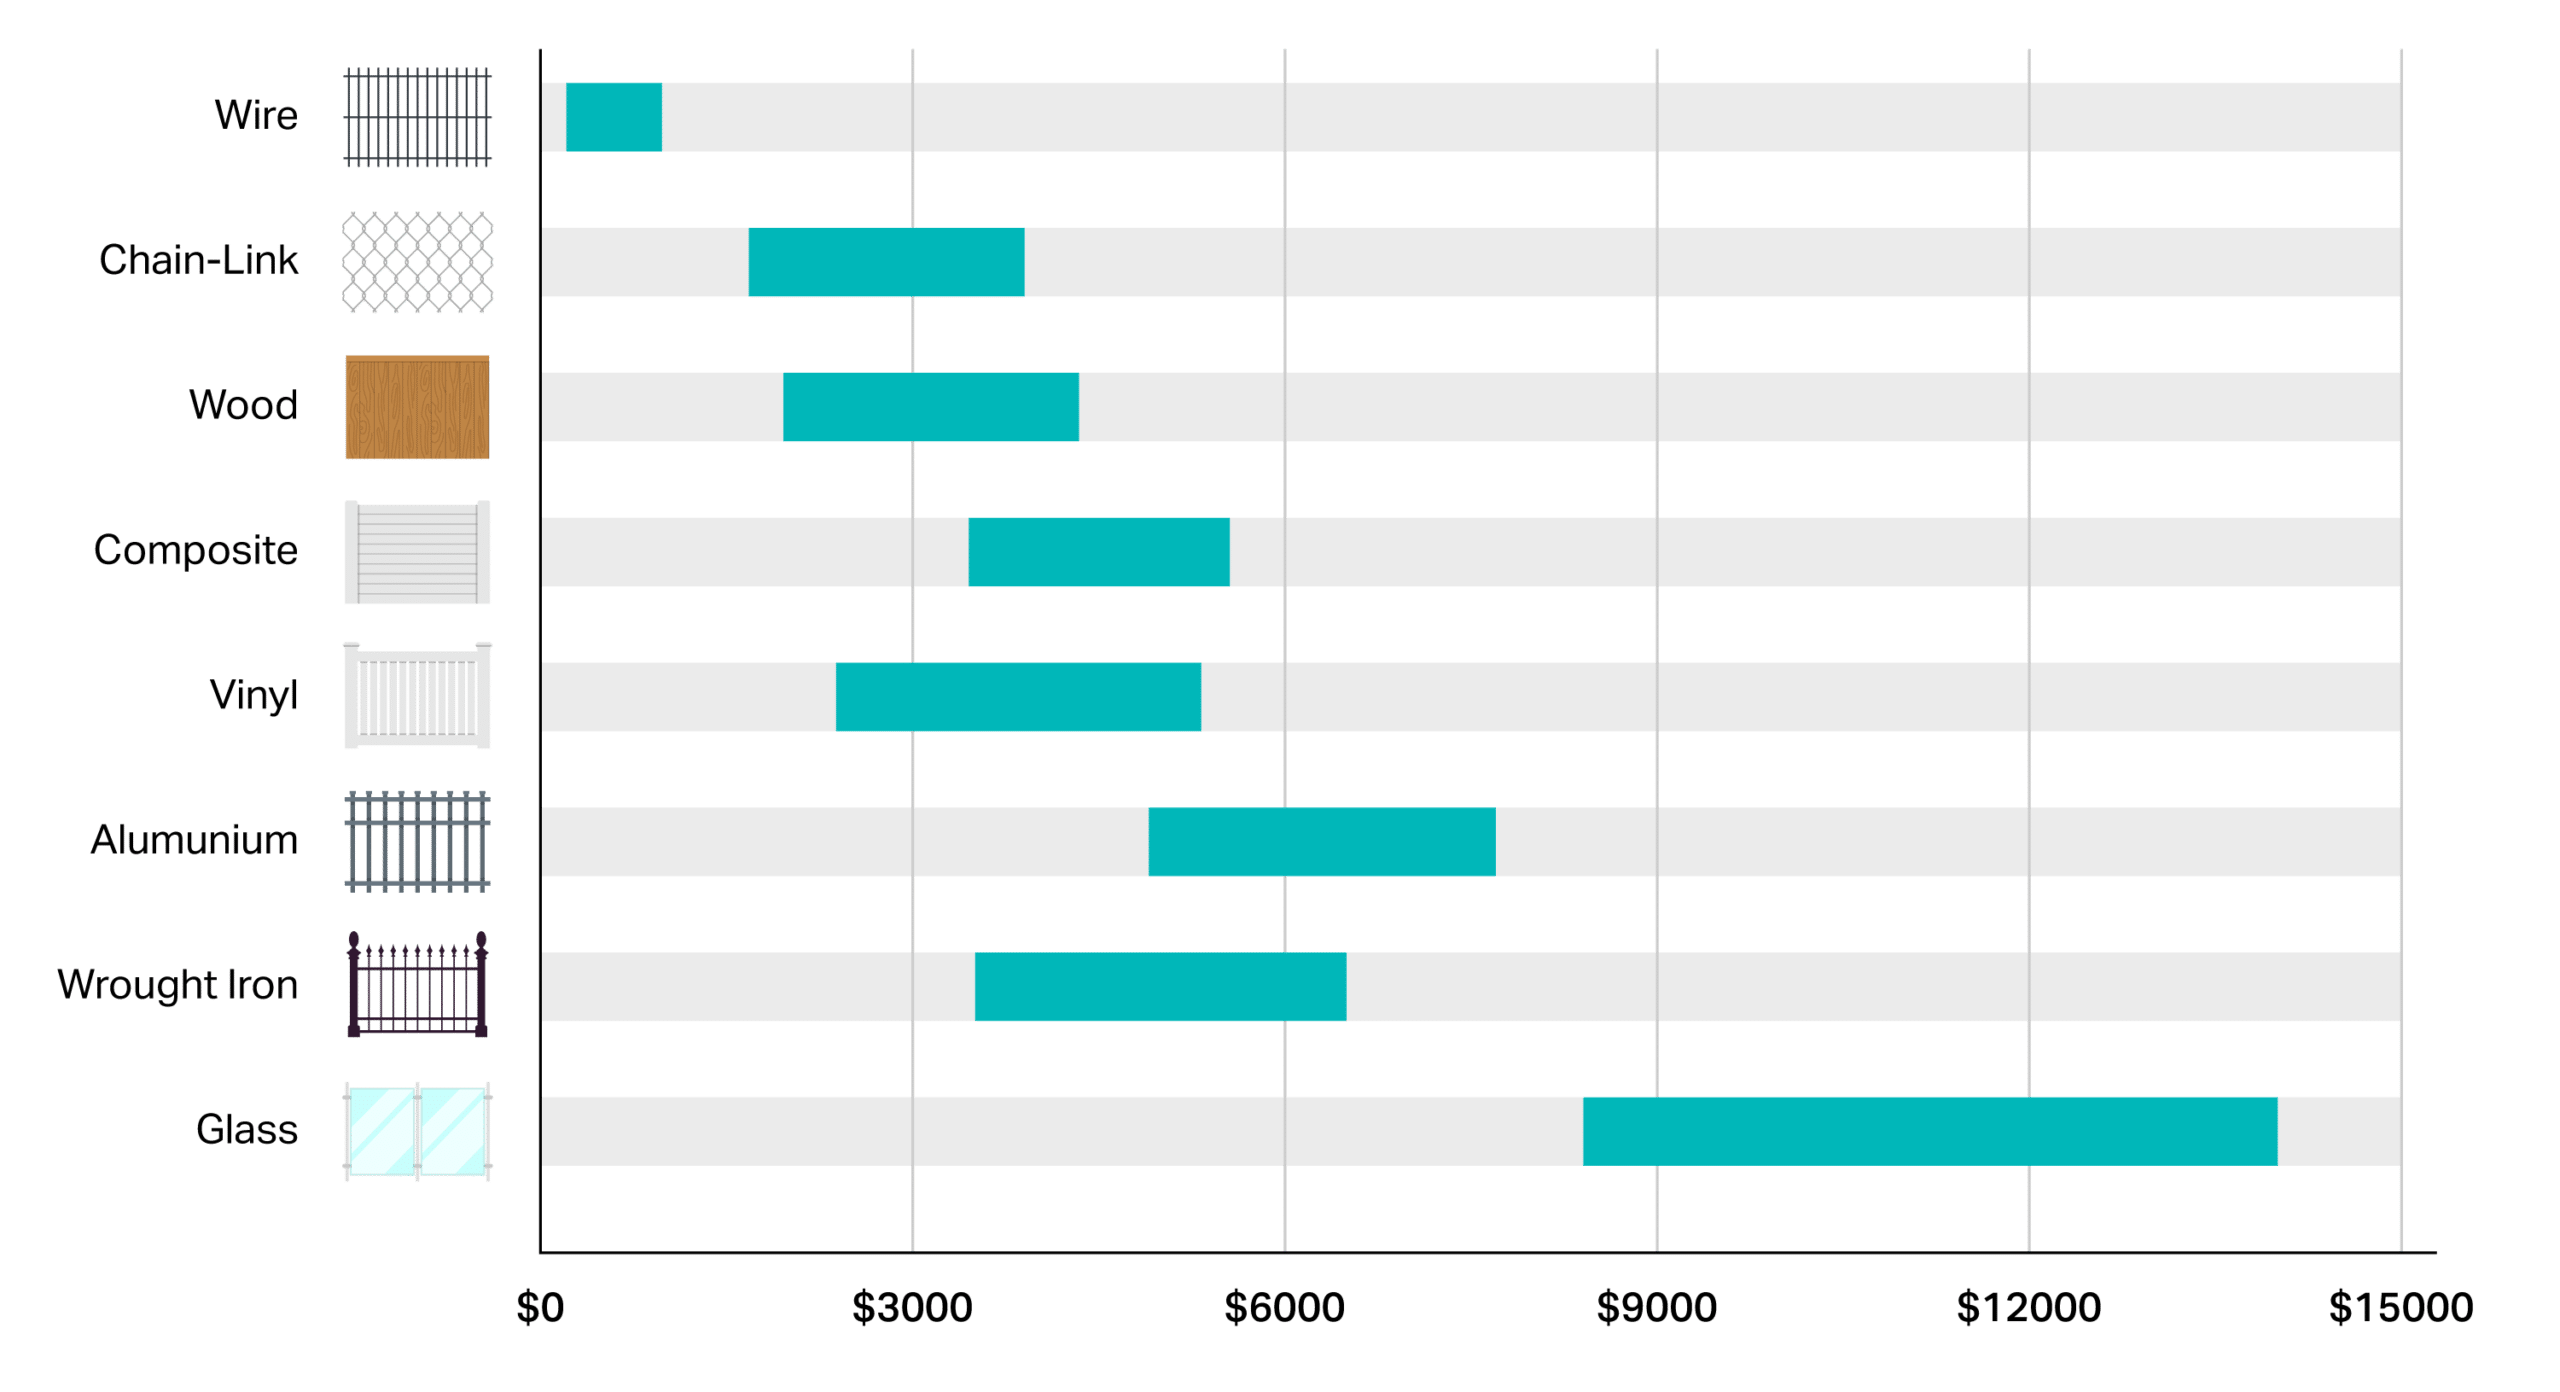 Average Cost per fence type